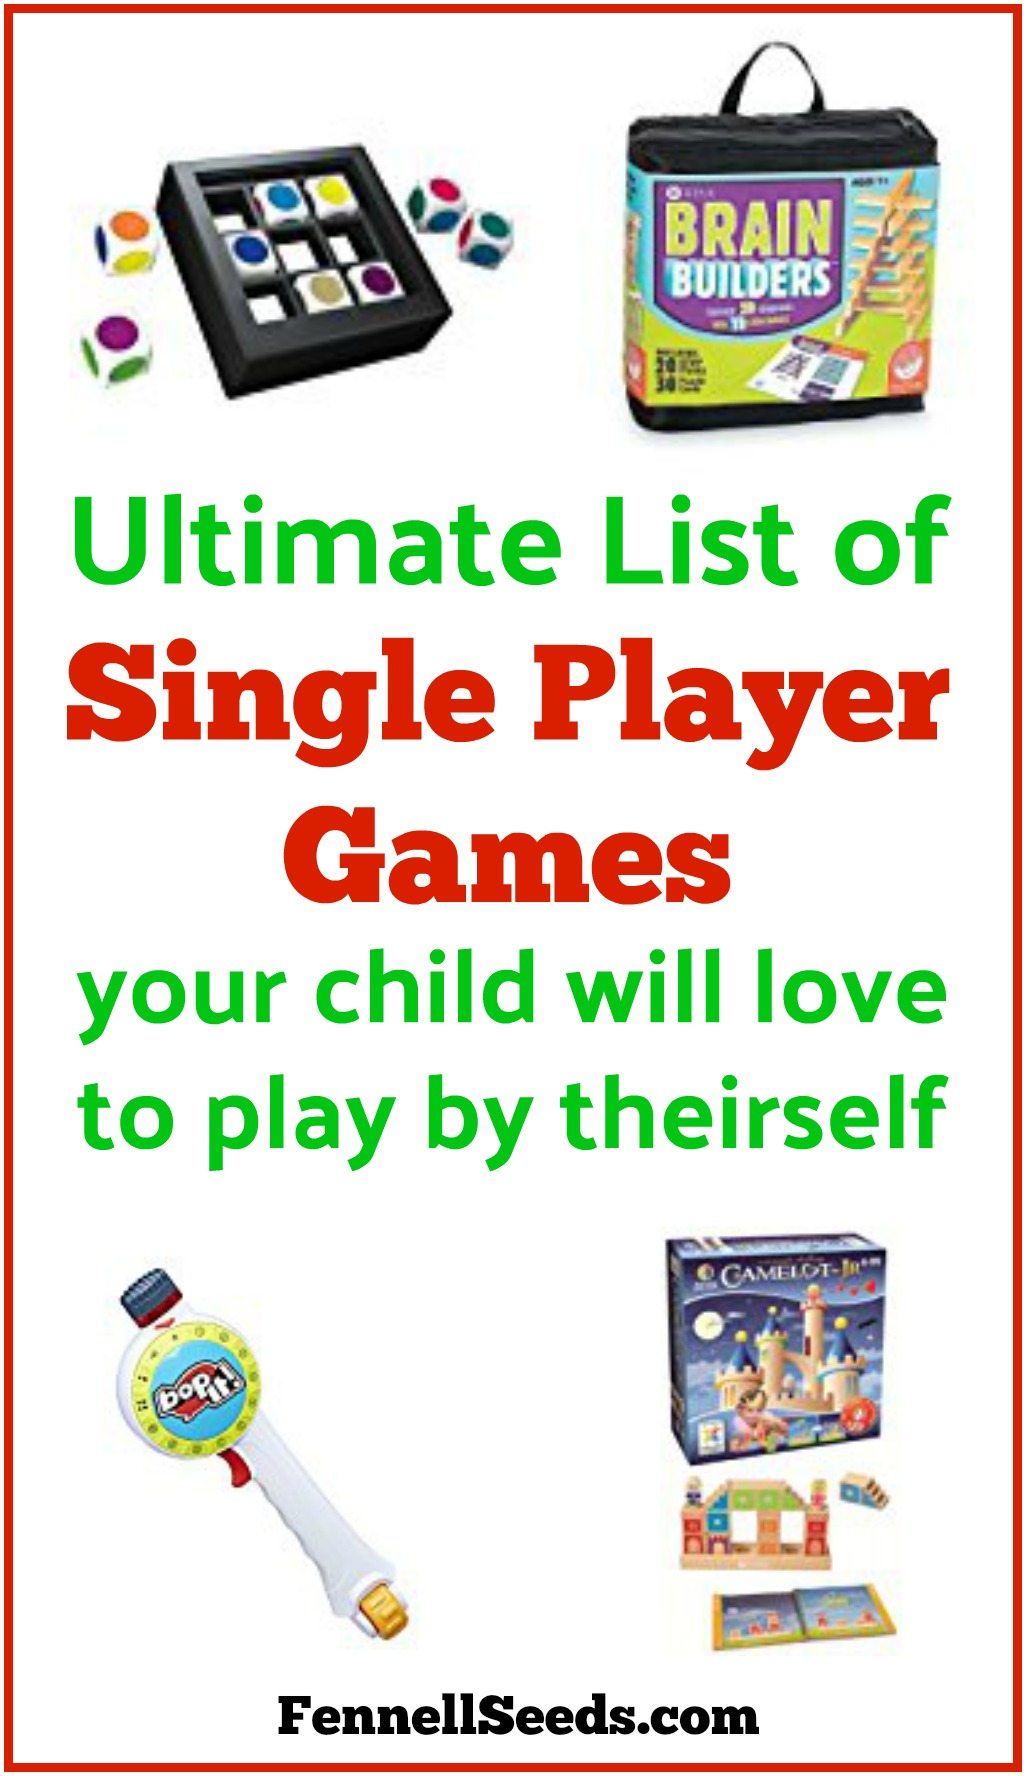 Single player games | Games for 1 person | Games for 1 player | Games for only children | 1 player games | #giftguide #toys